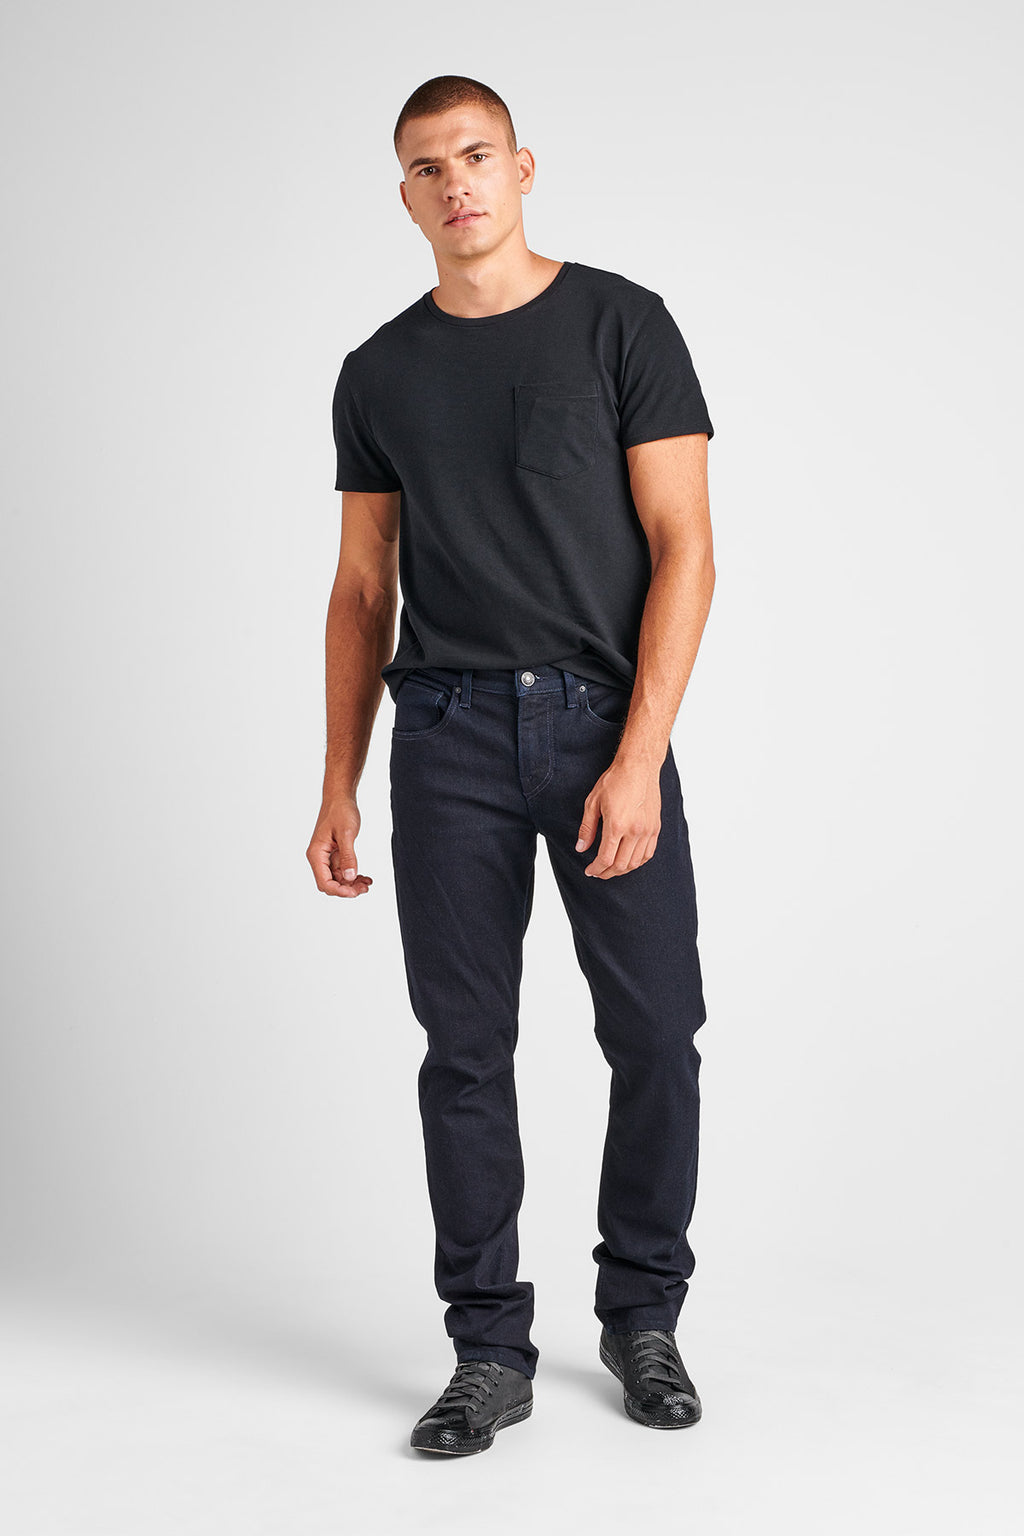 BLAKE SLIM STRAIGHT JEAN - WILLIAMS - Image 1